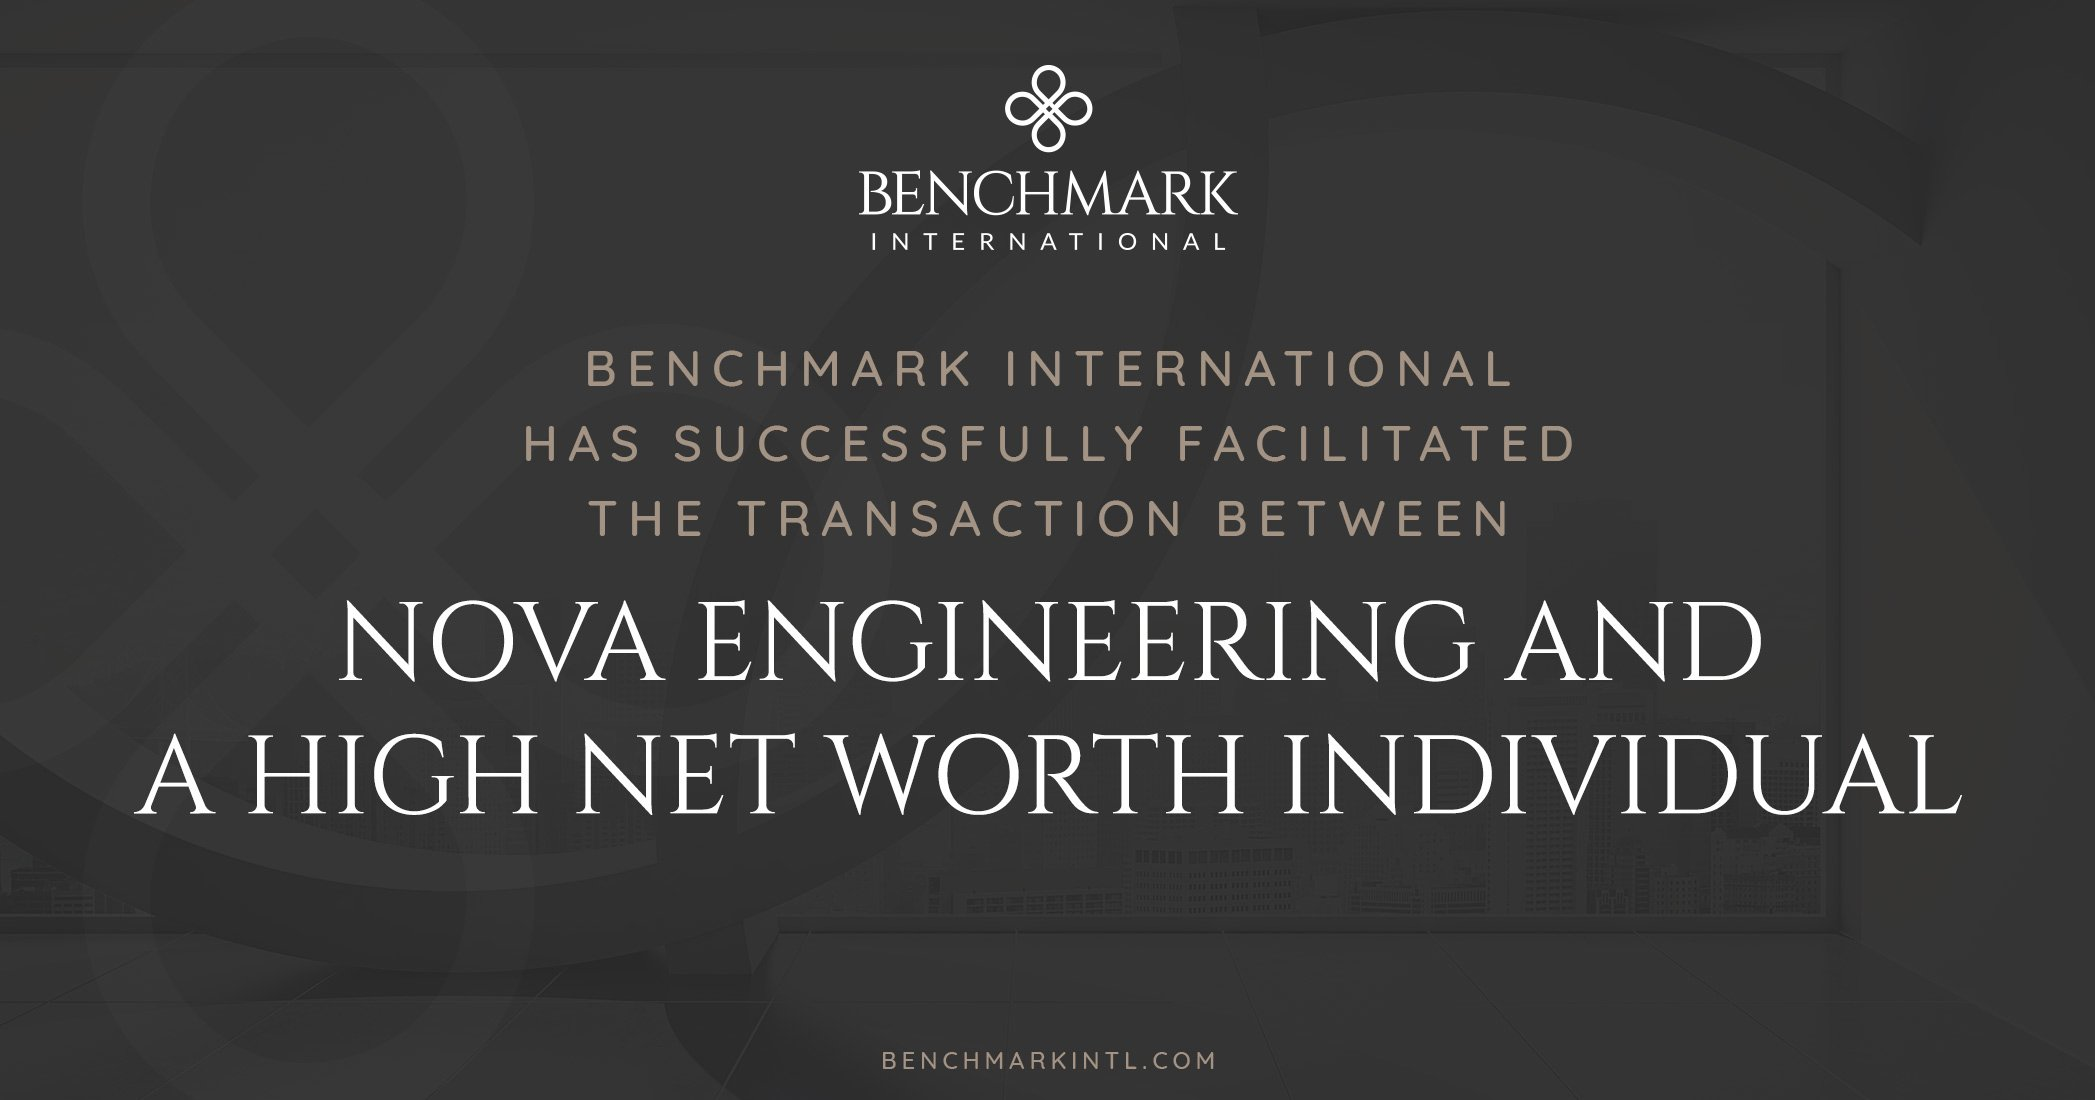 Benchmark International Facilitated The Transaction Of Nova Engineering And A High Net Worth Individual